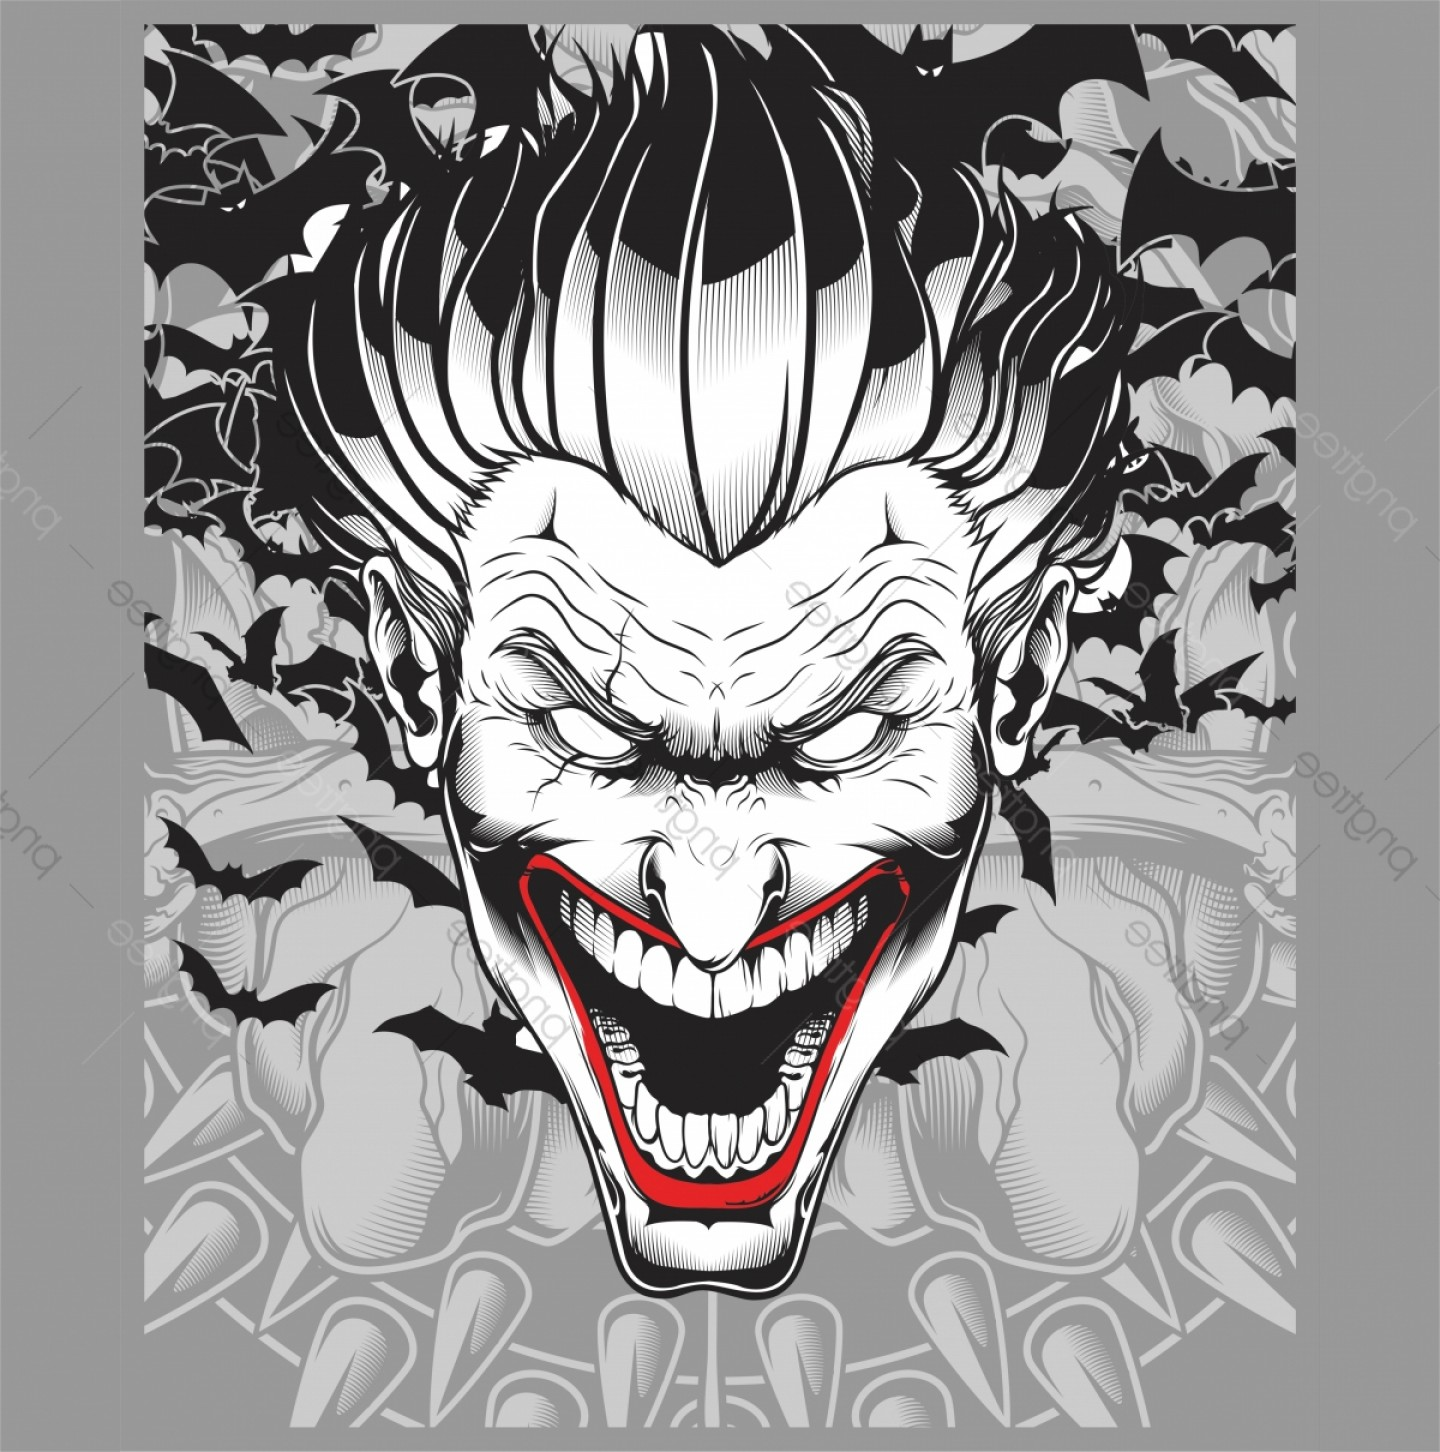 Cool Evil Vectors: Lucifer Evil Demon Joker Hand Drawing Vector